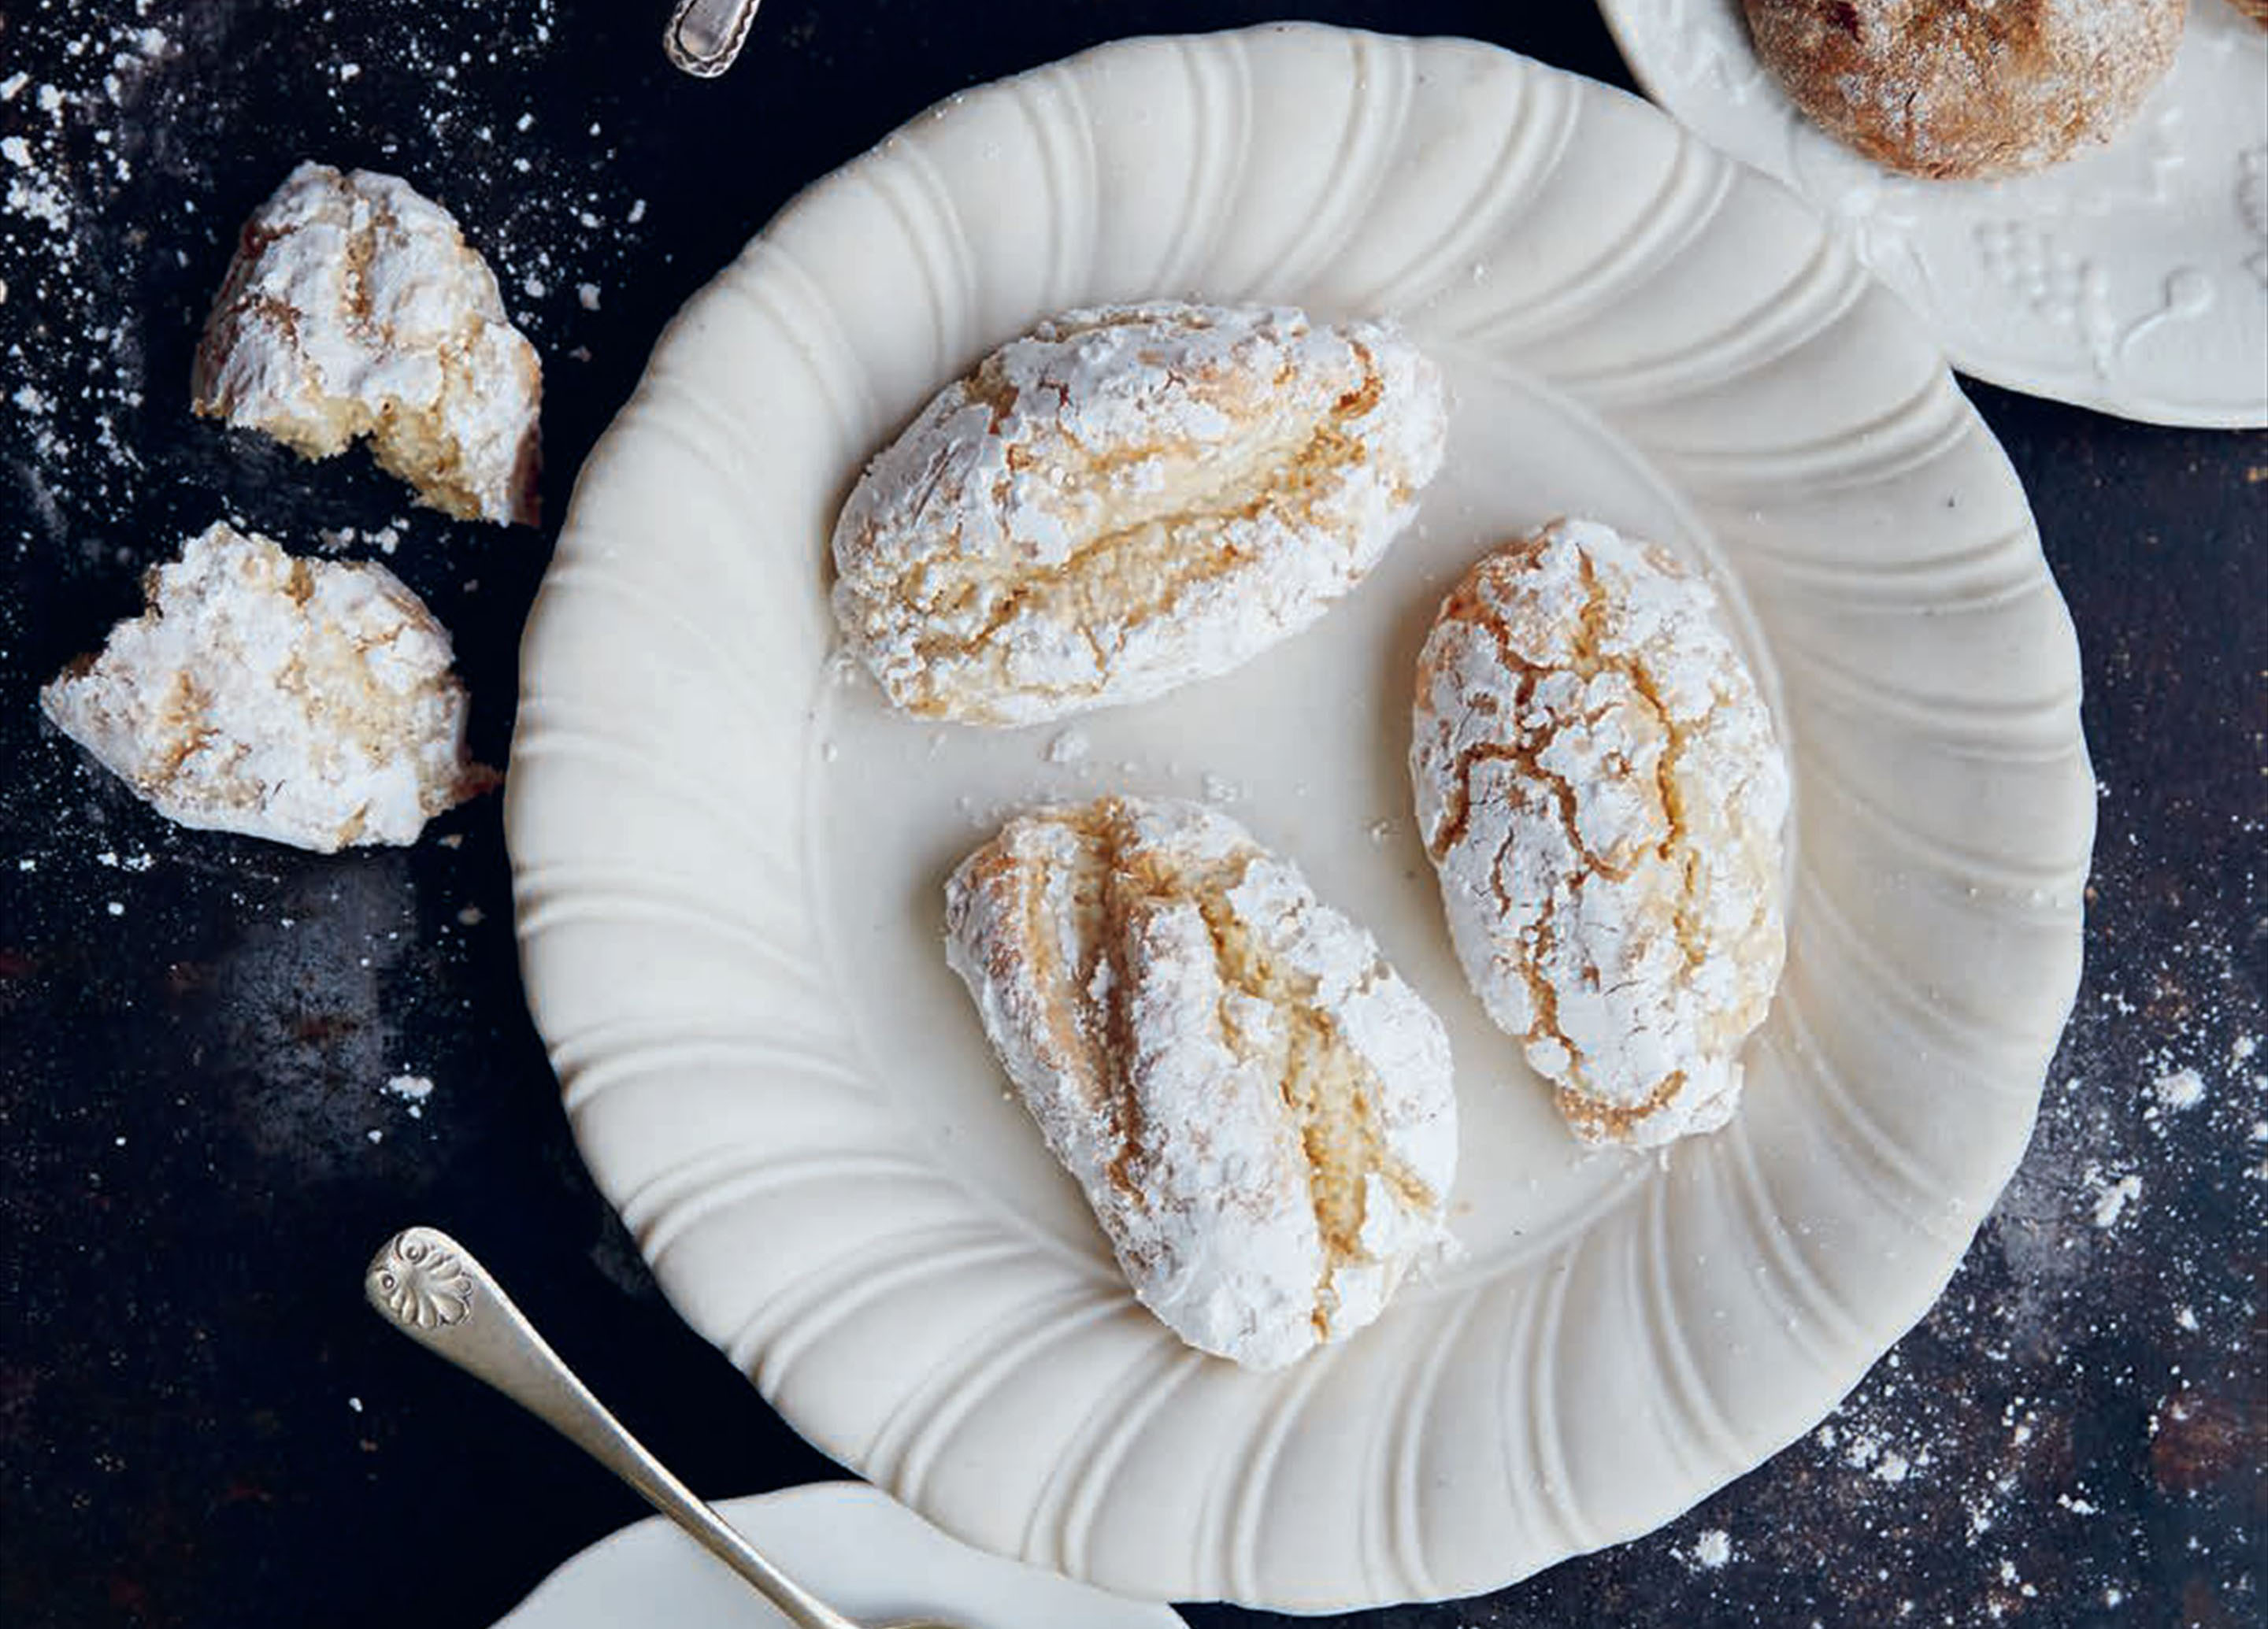 Sienese almond biscuits